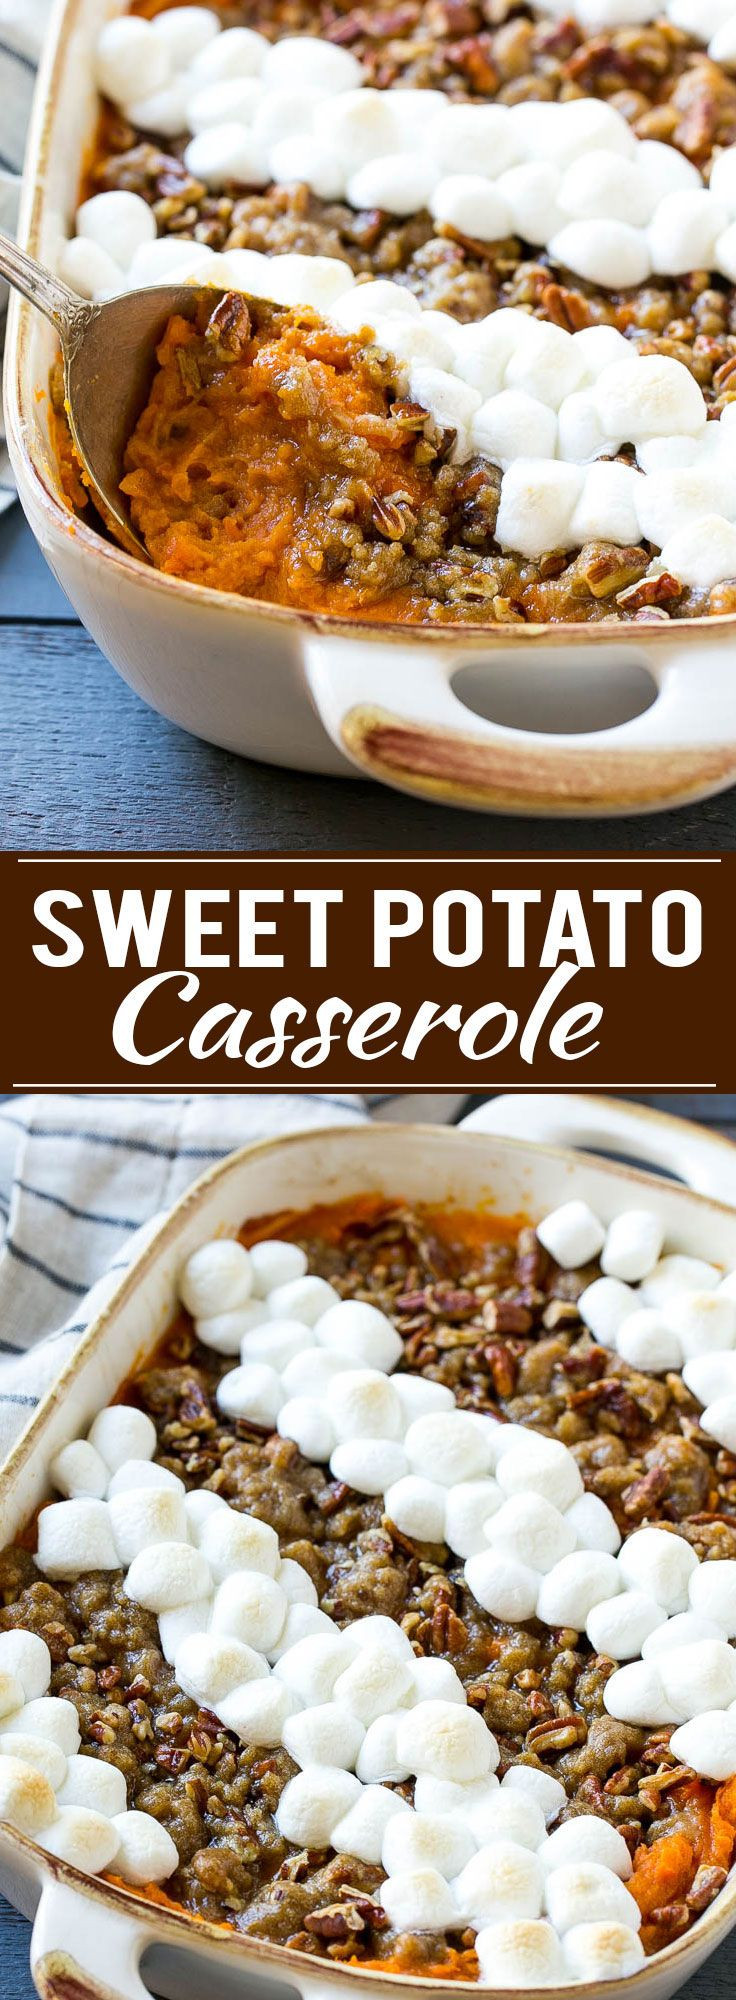 Sweet Potatoes Recipe For Thanksgiving Dinner  This recipe for a sweet potato casserole with marshmallows